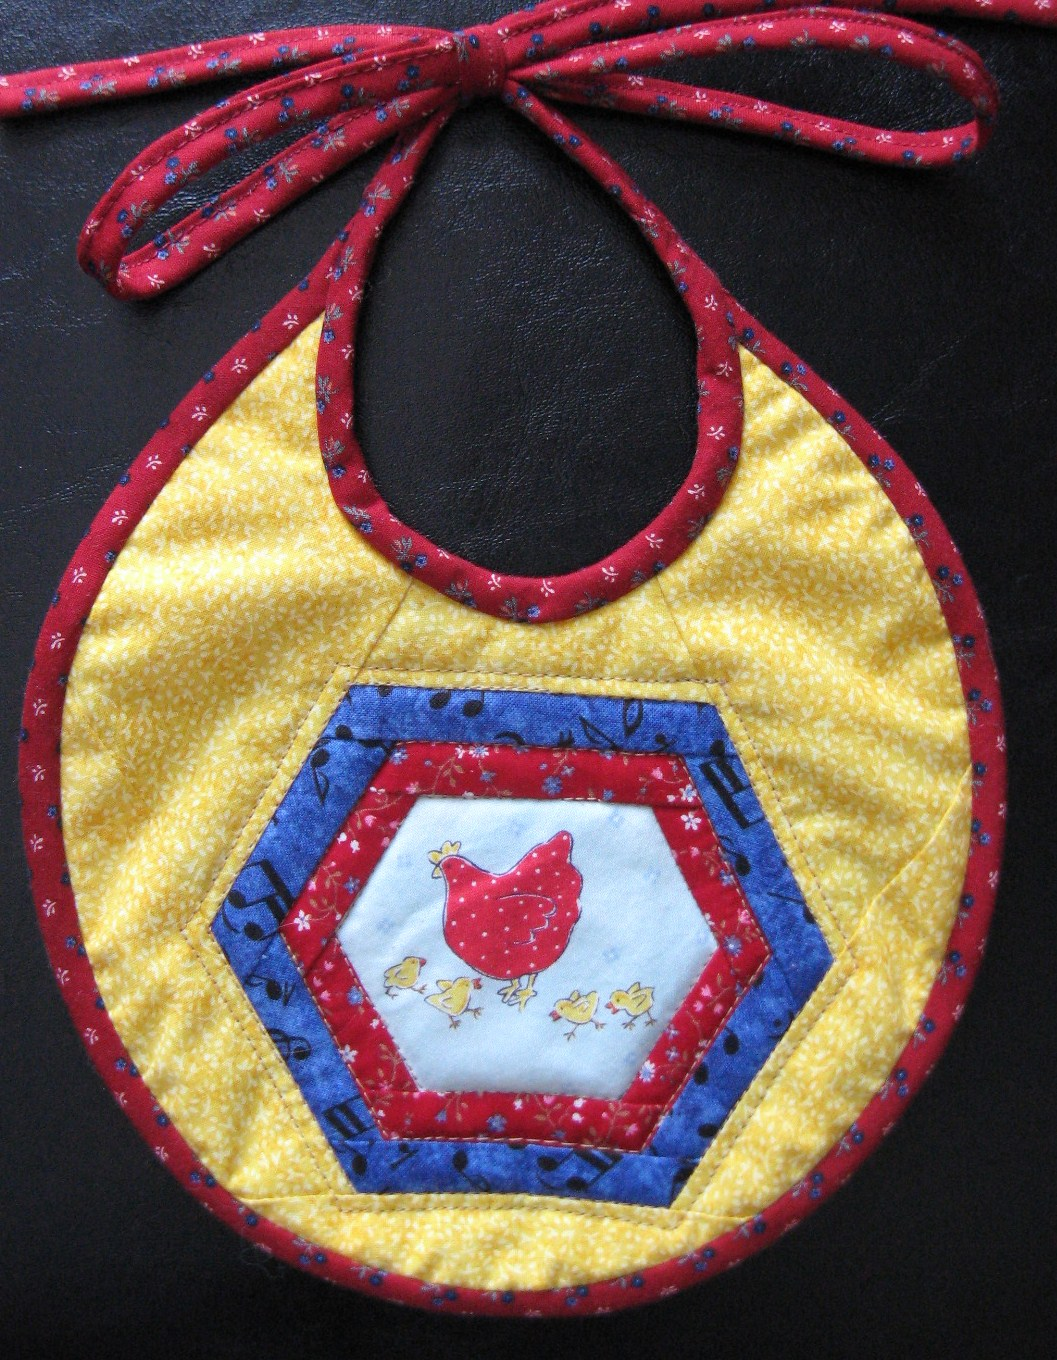 Chicken Dance quilted baby bib